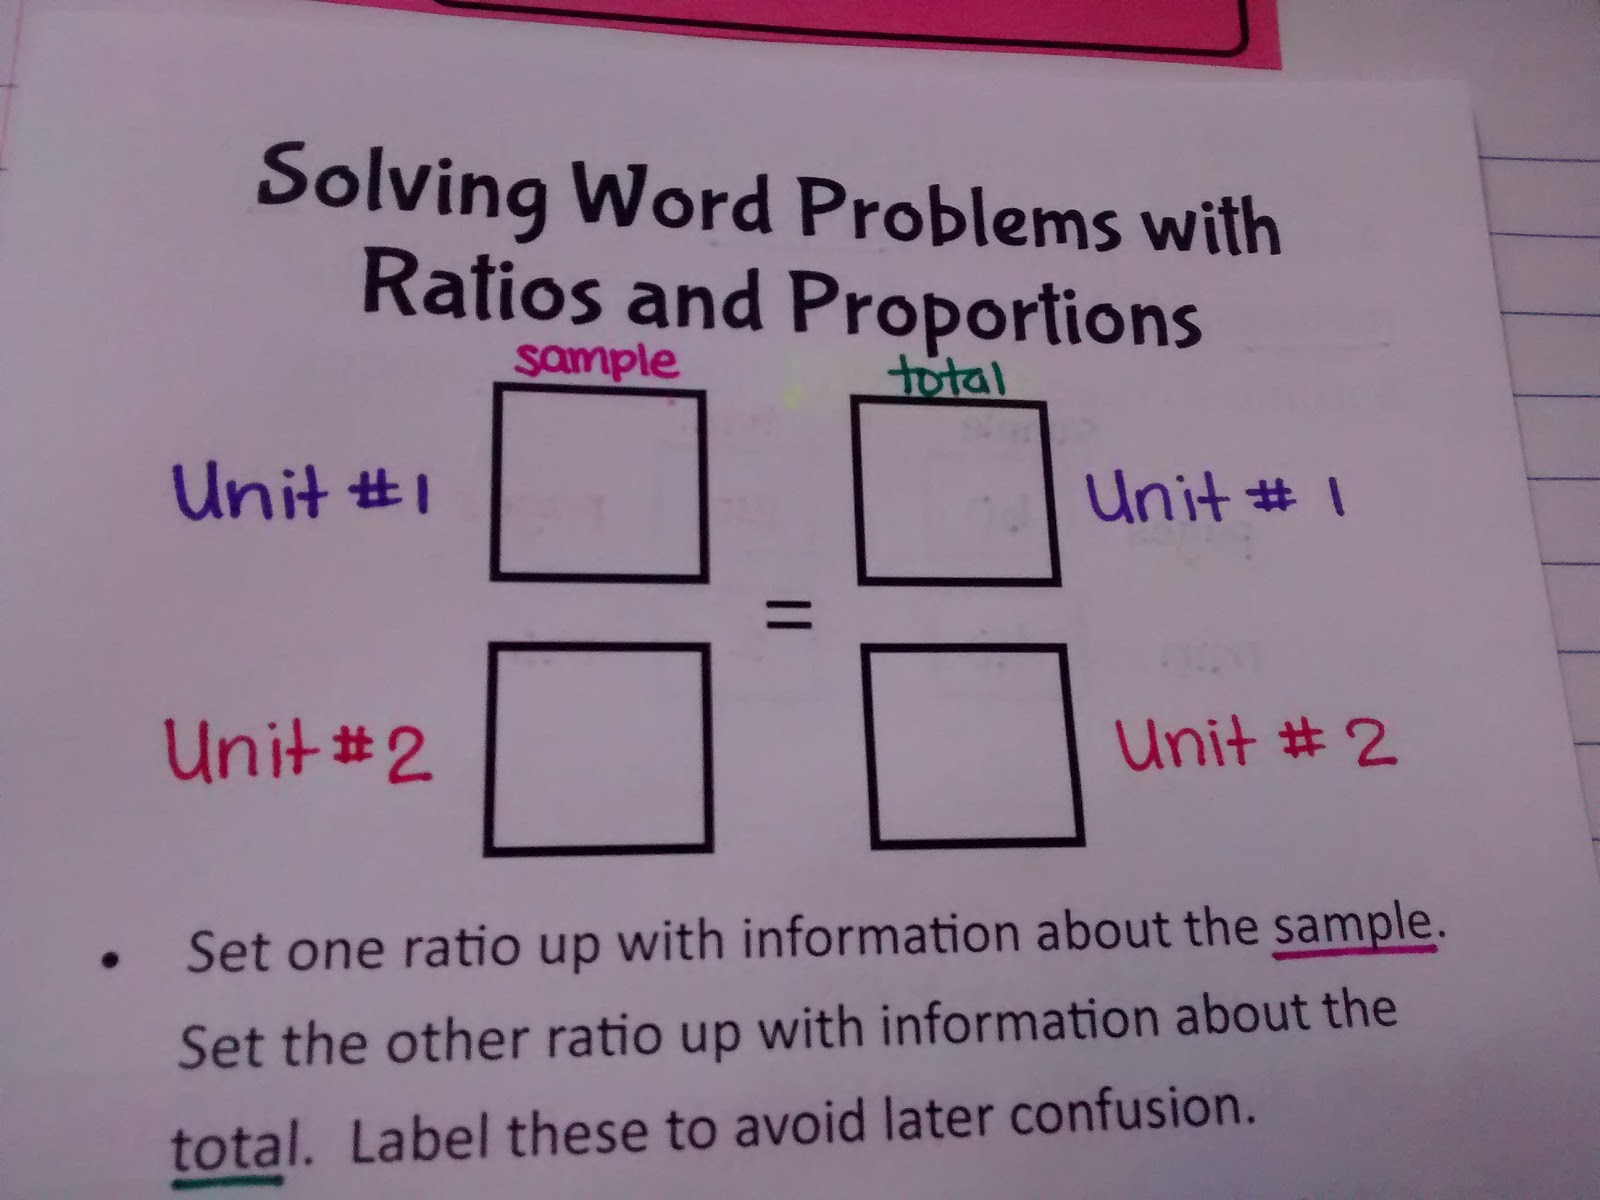 Solving Ratio Problems Ratios 02 07